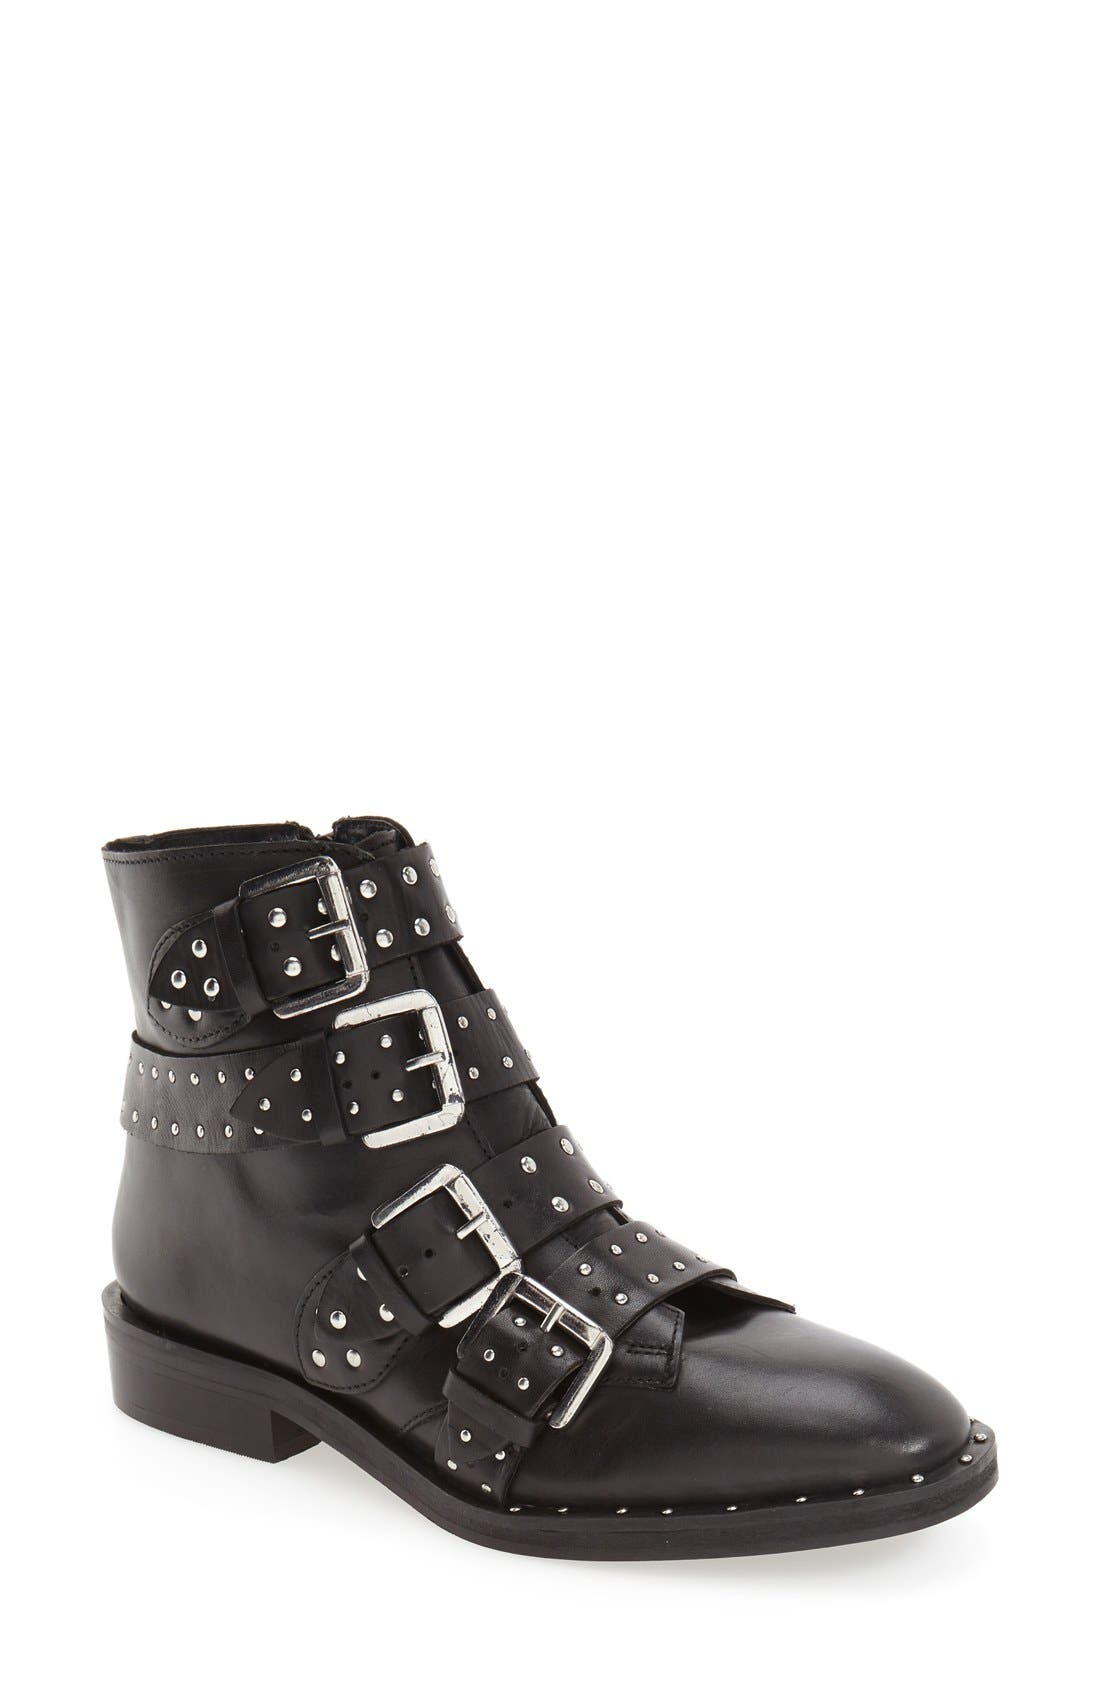 Alternate Image 1 Selected - Topshop 'Amy' Studded Buckle Bootie (Women)